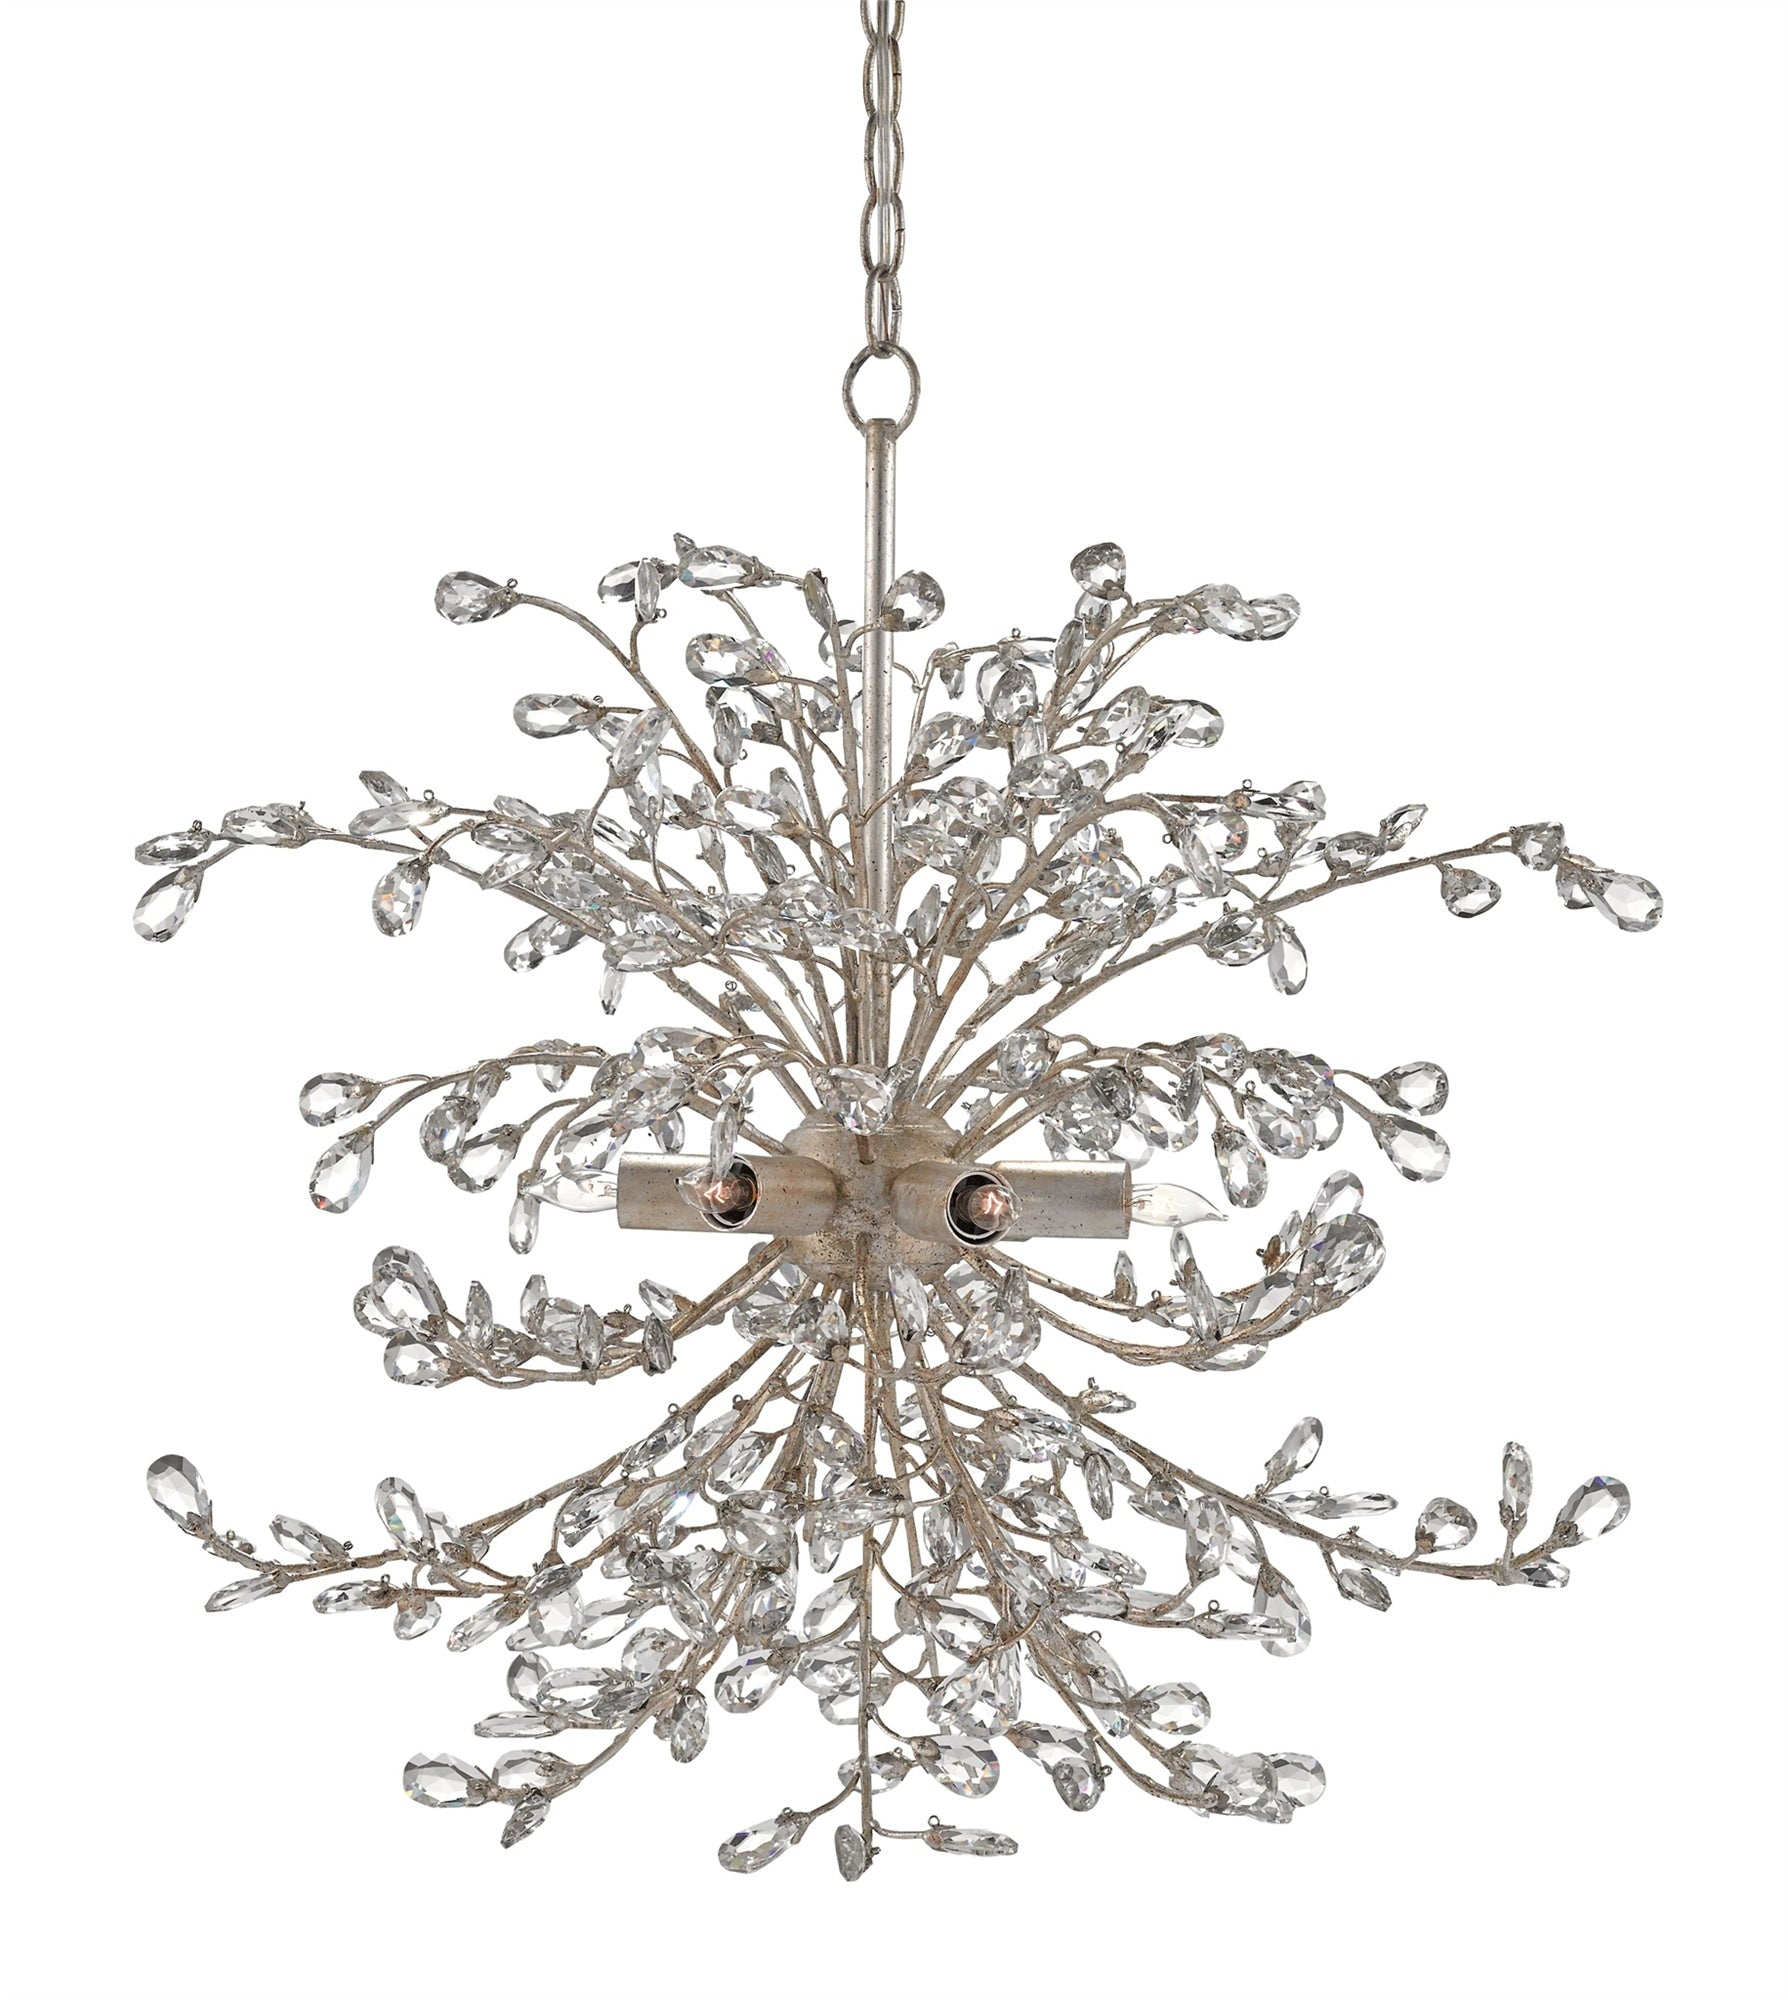 Currey and Company Tiara Chandelier 9439